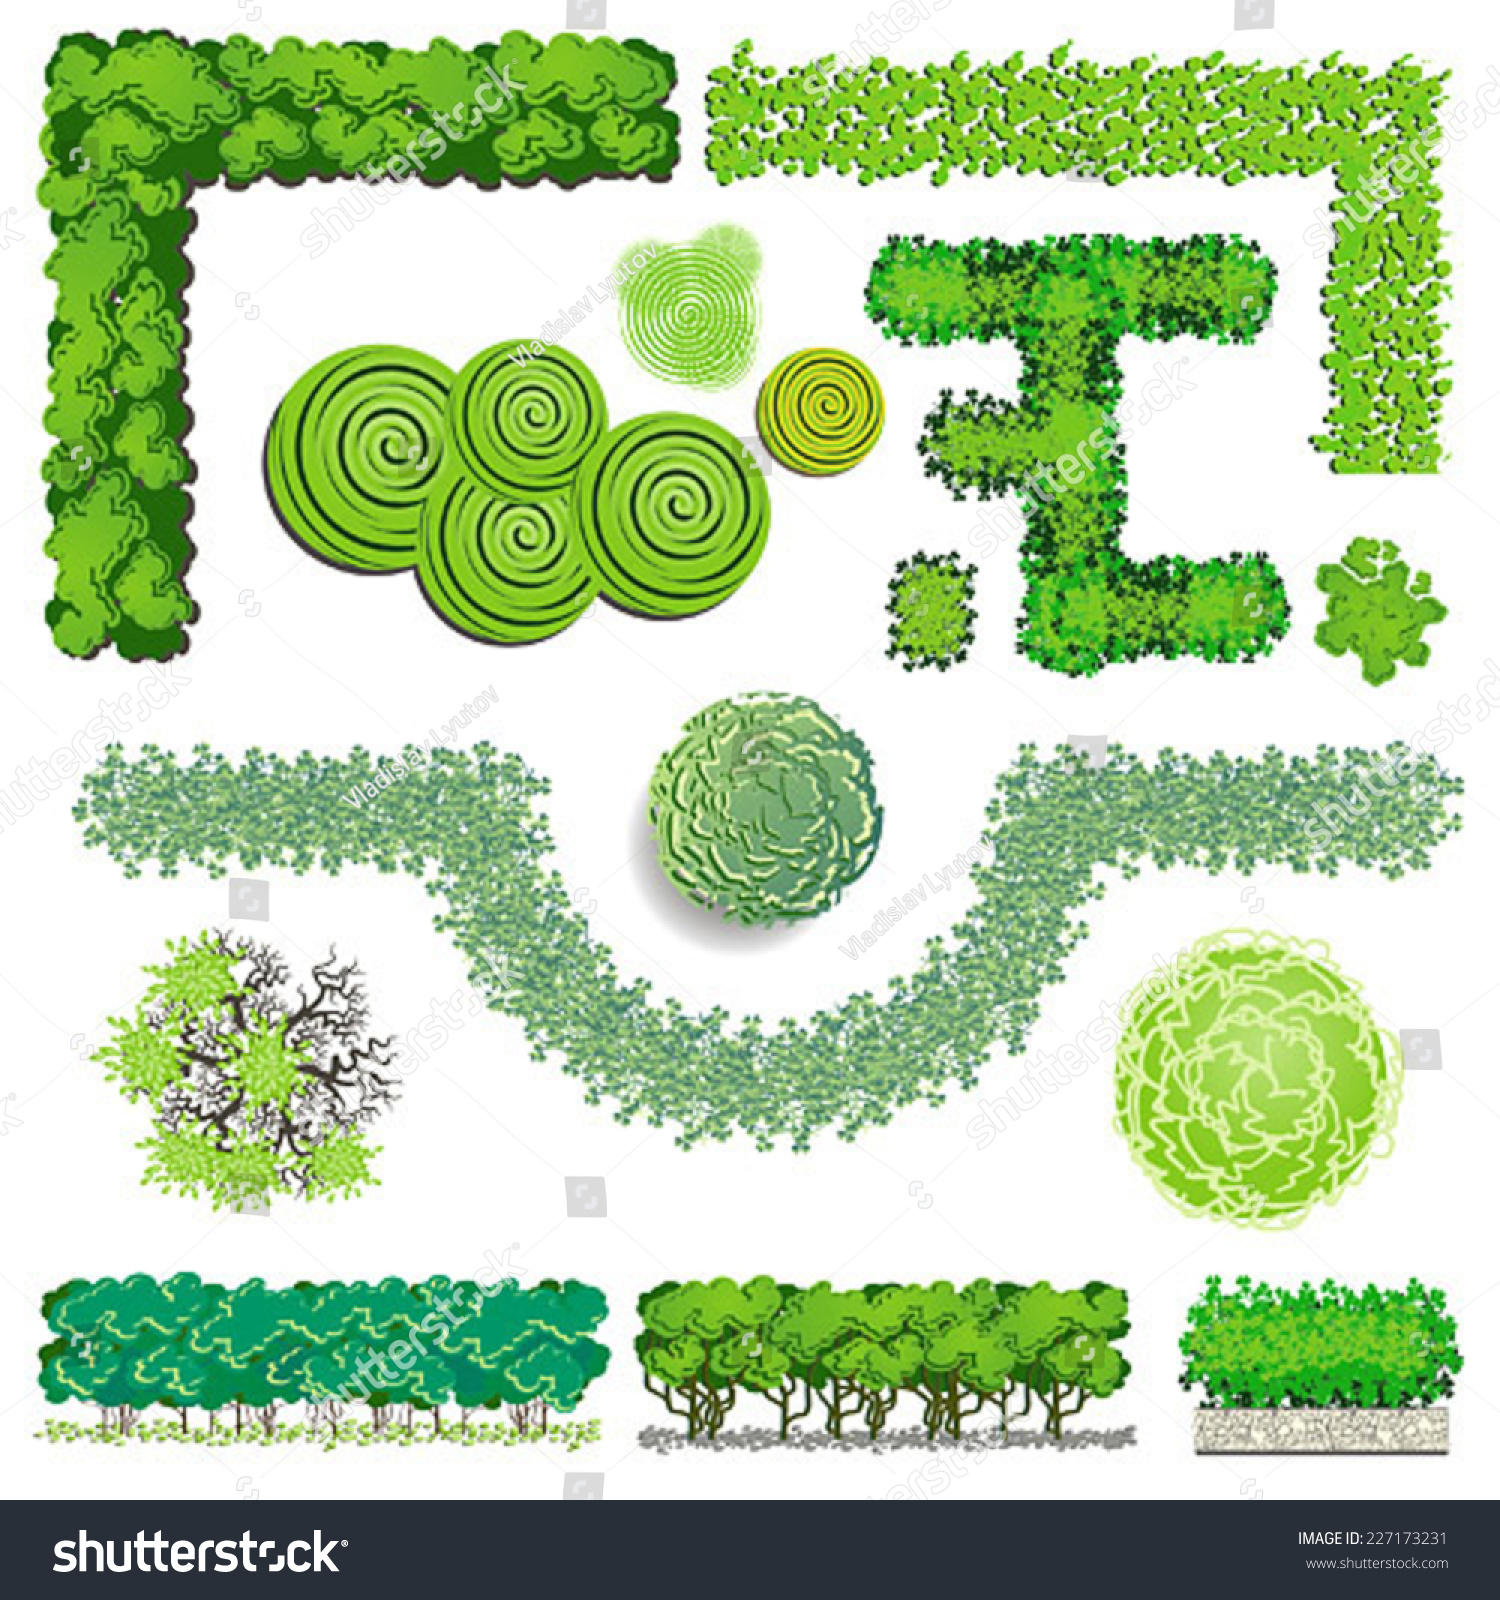 creating a forest garden pdf download